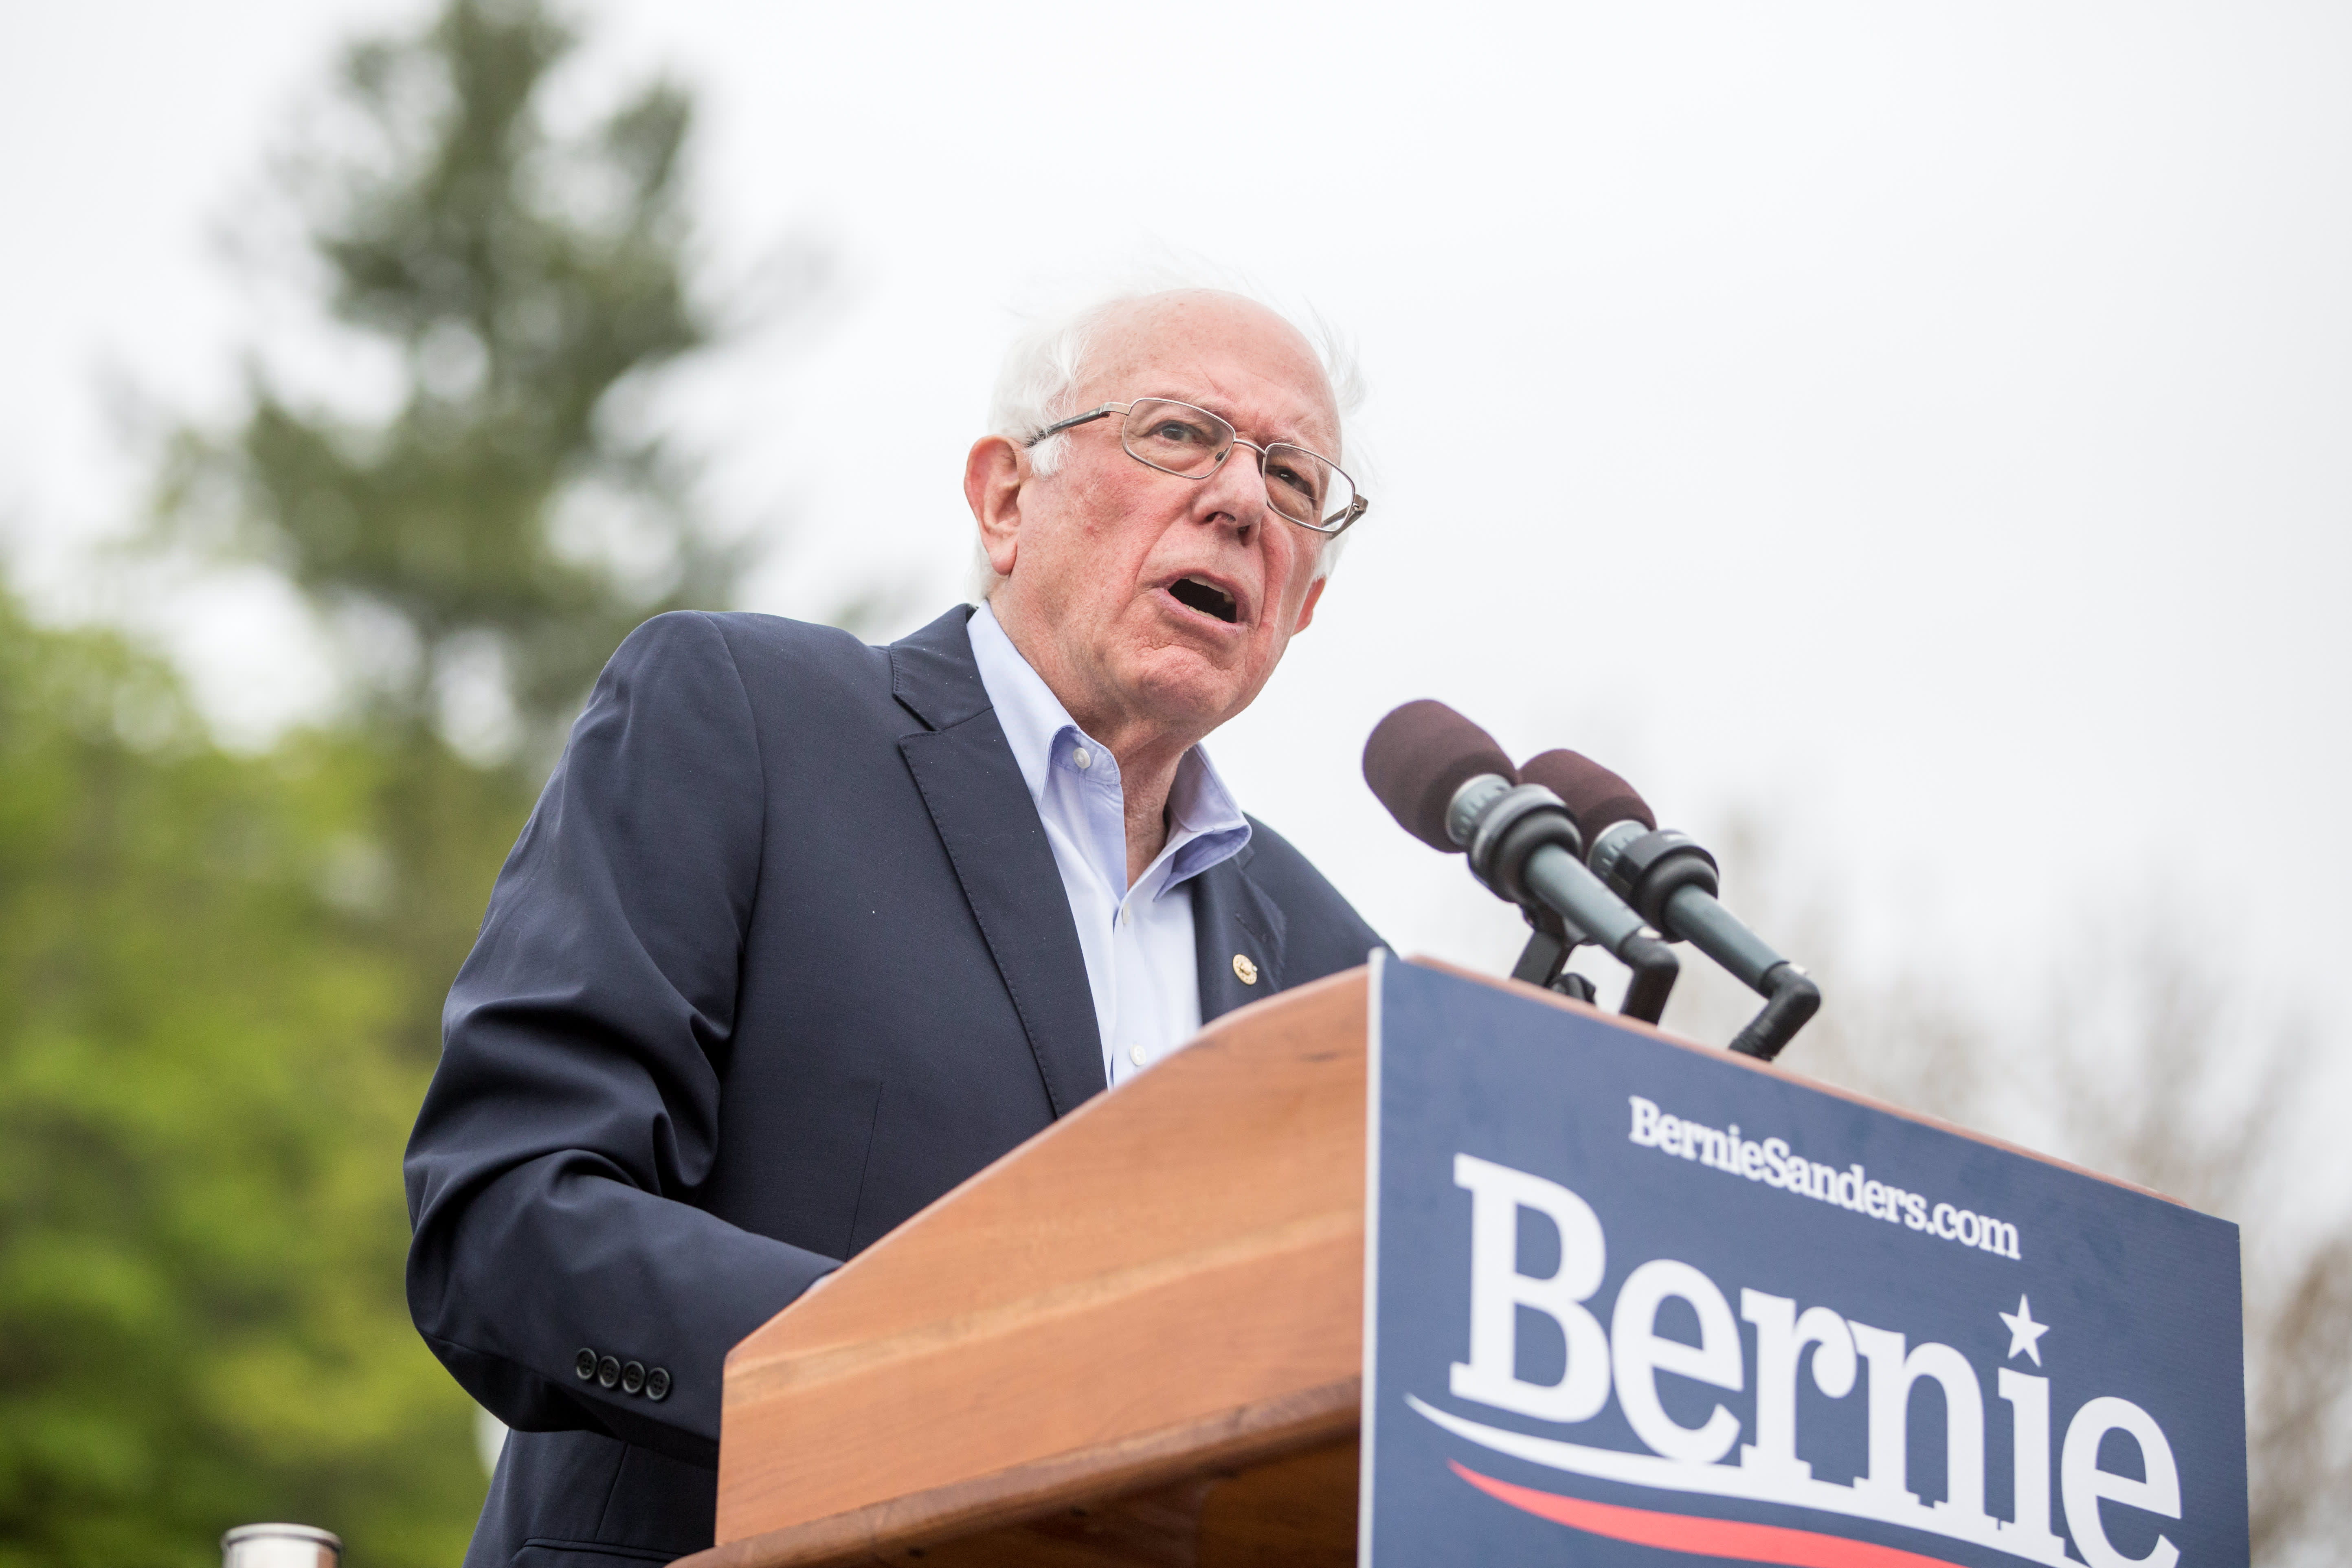 Bernie Sanders faces backlash over war machine he brought to Vermont